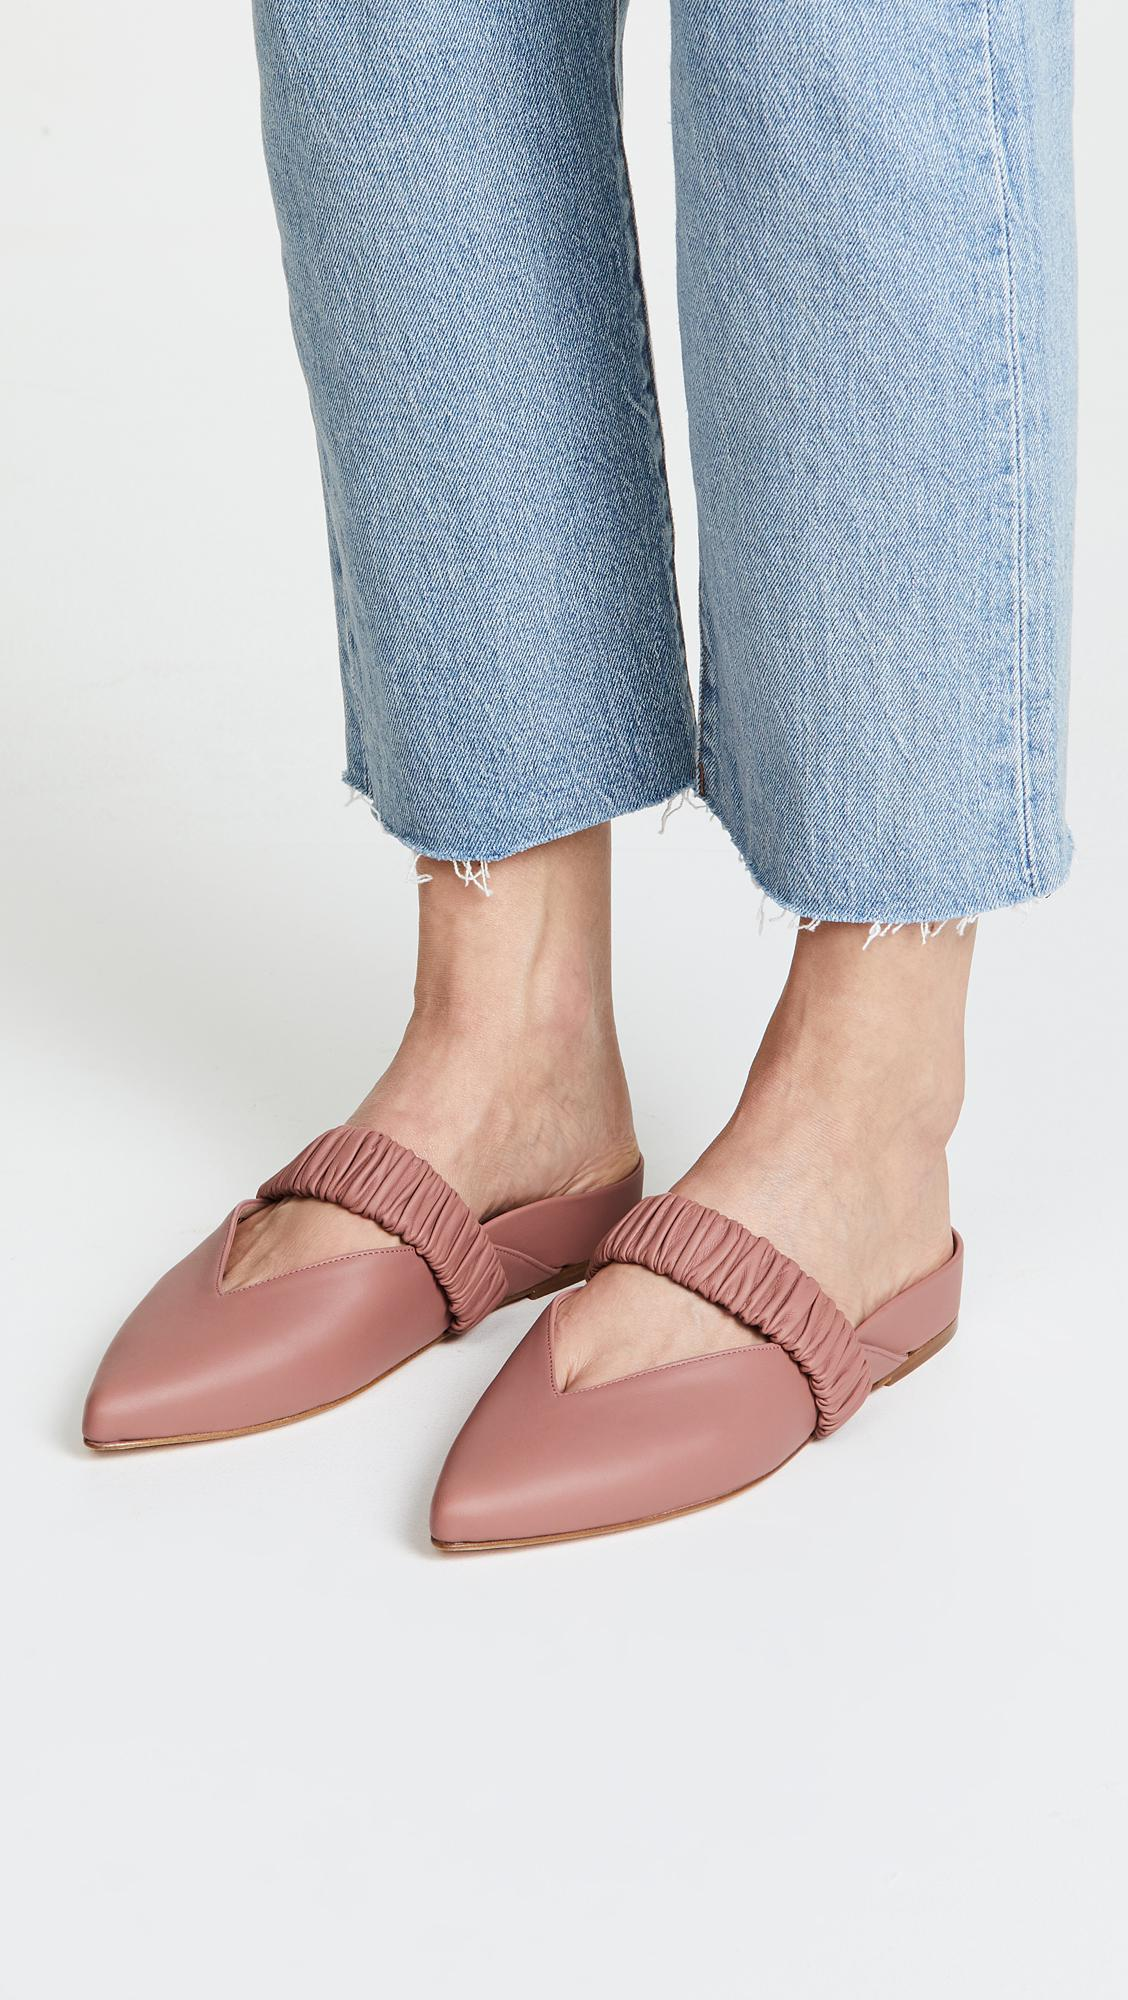 Footlocker Finishline Sale Online Stuart Weitzman Women's Indira Pointed Toe Mules Cheap Sale Wholesale Price Supply Cheap Price eKezNefCxD